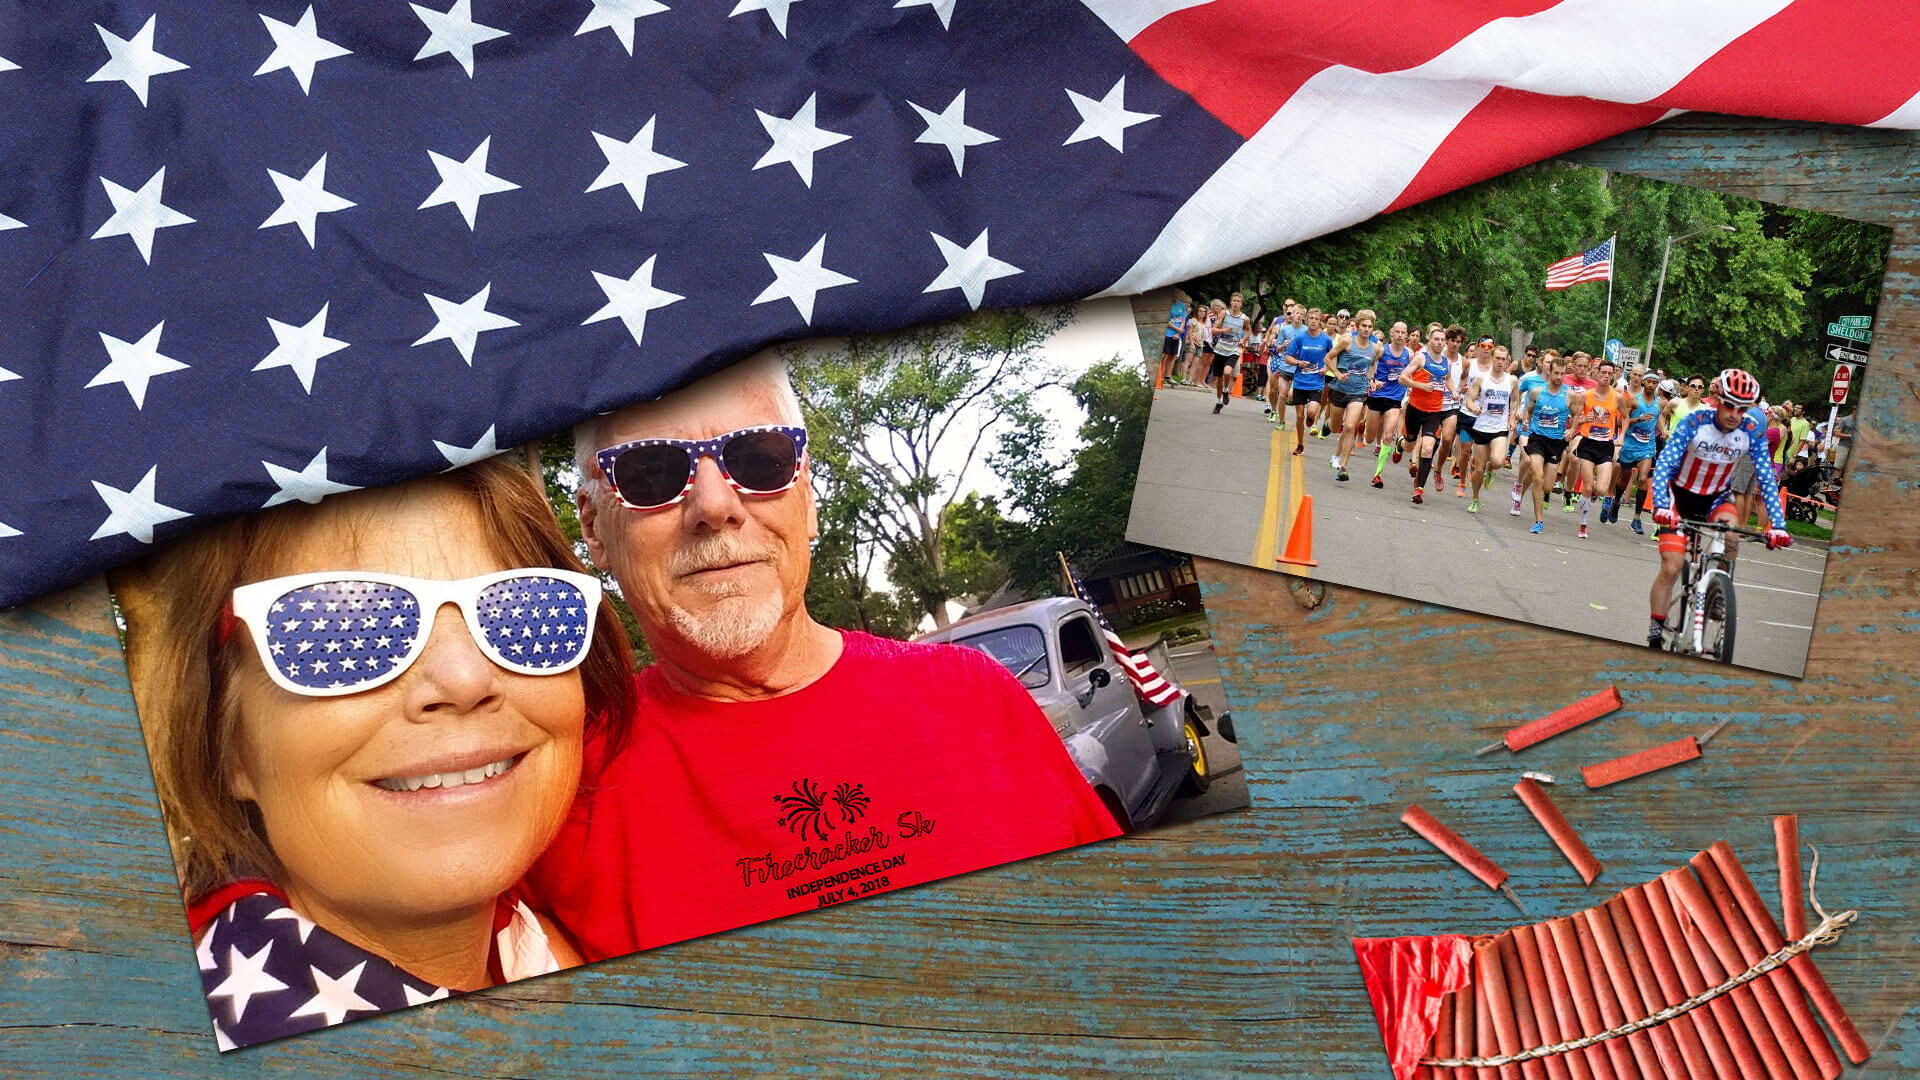 Flash and Jan at the July 4th 2018 Firecracker 5k